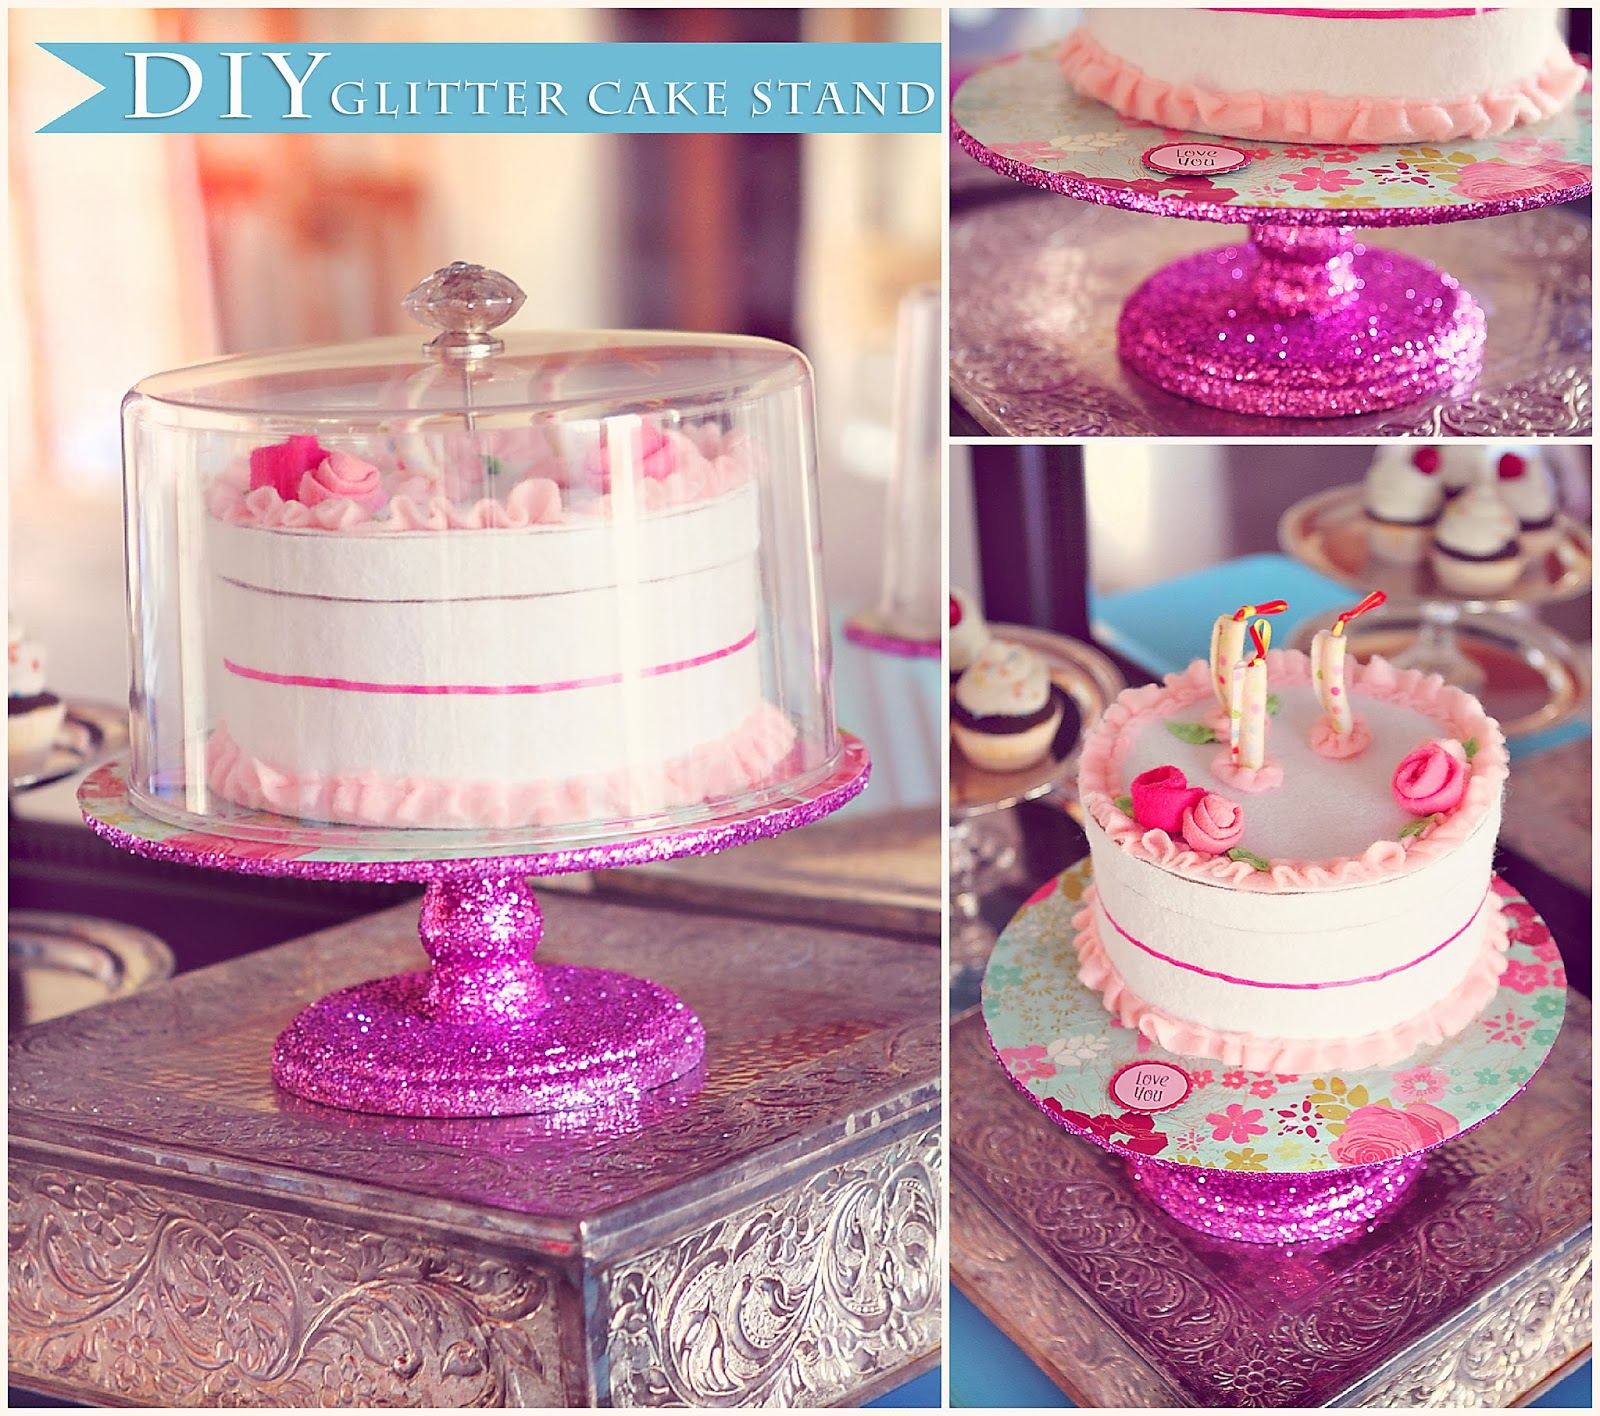 diy glittery cake stand. Black Bedroom Furniture Sets. Home Design Ideas